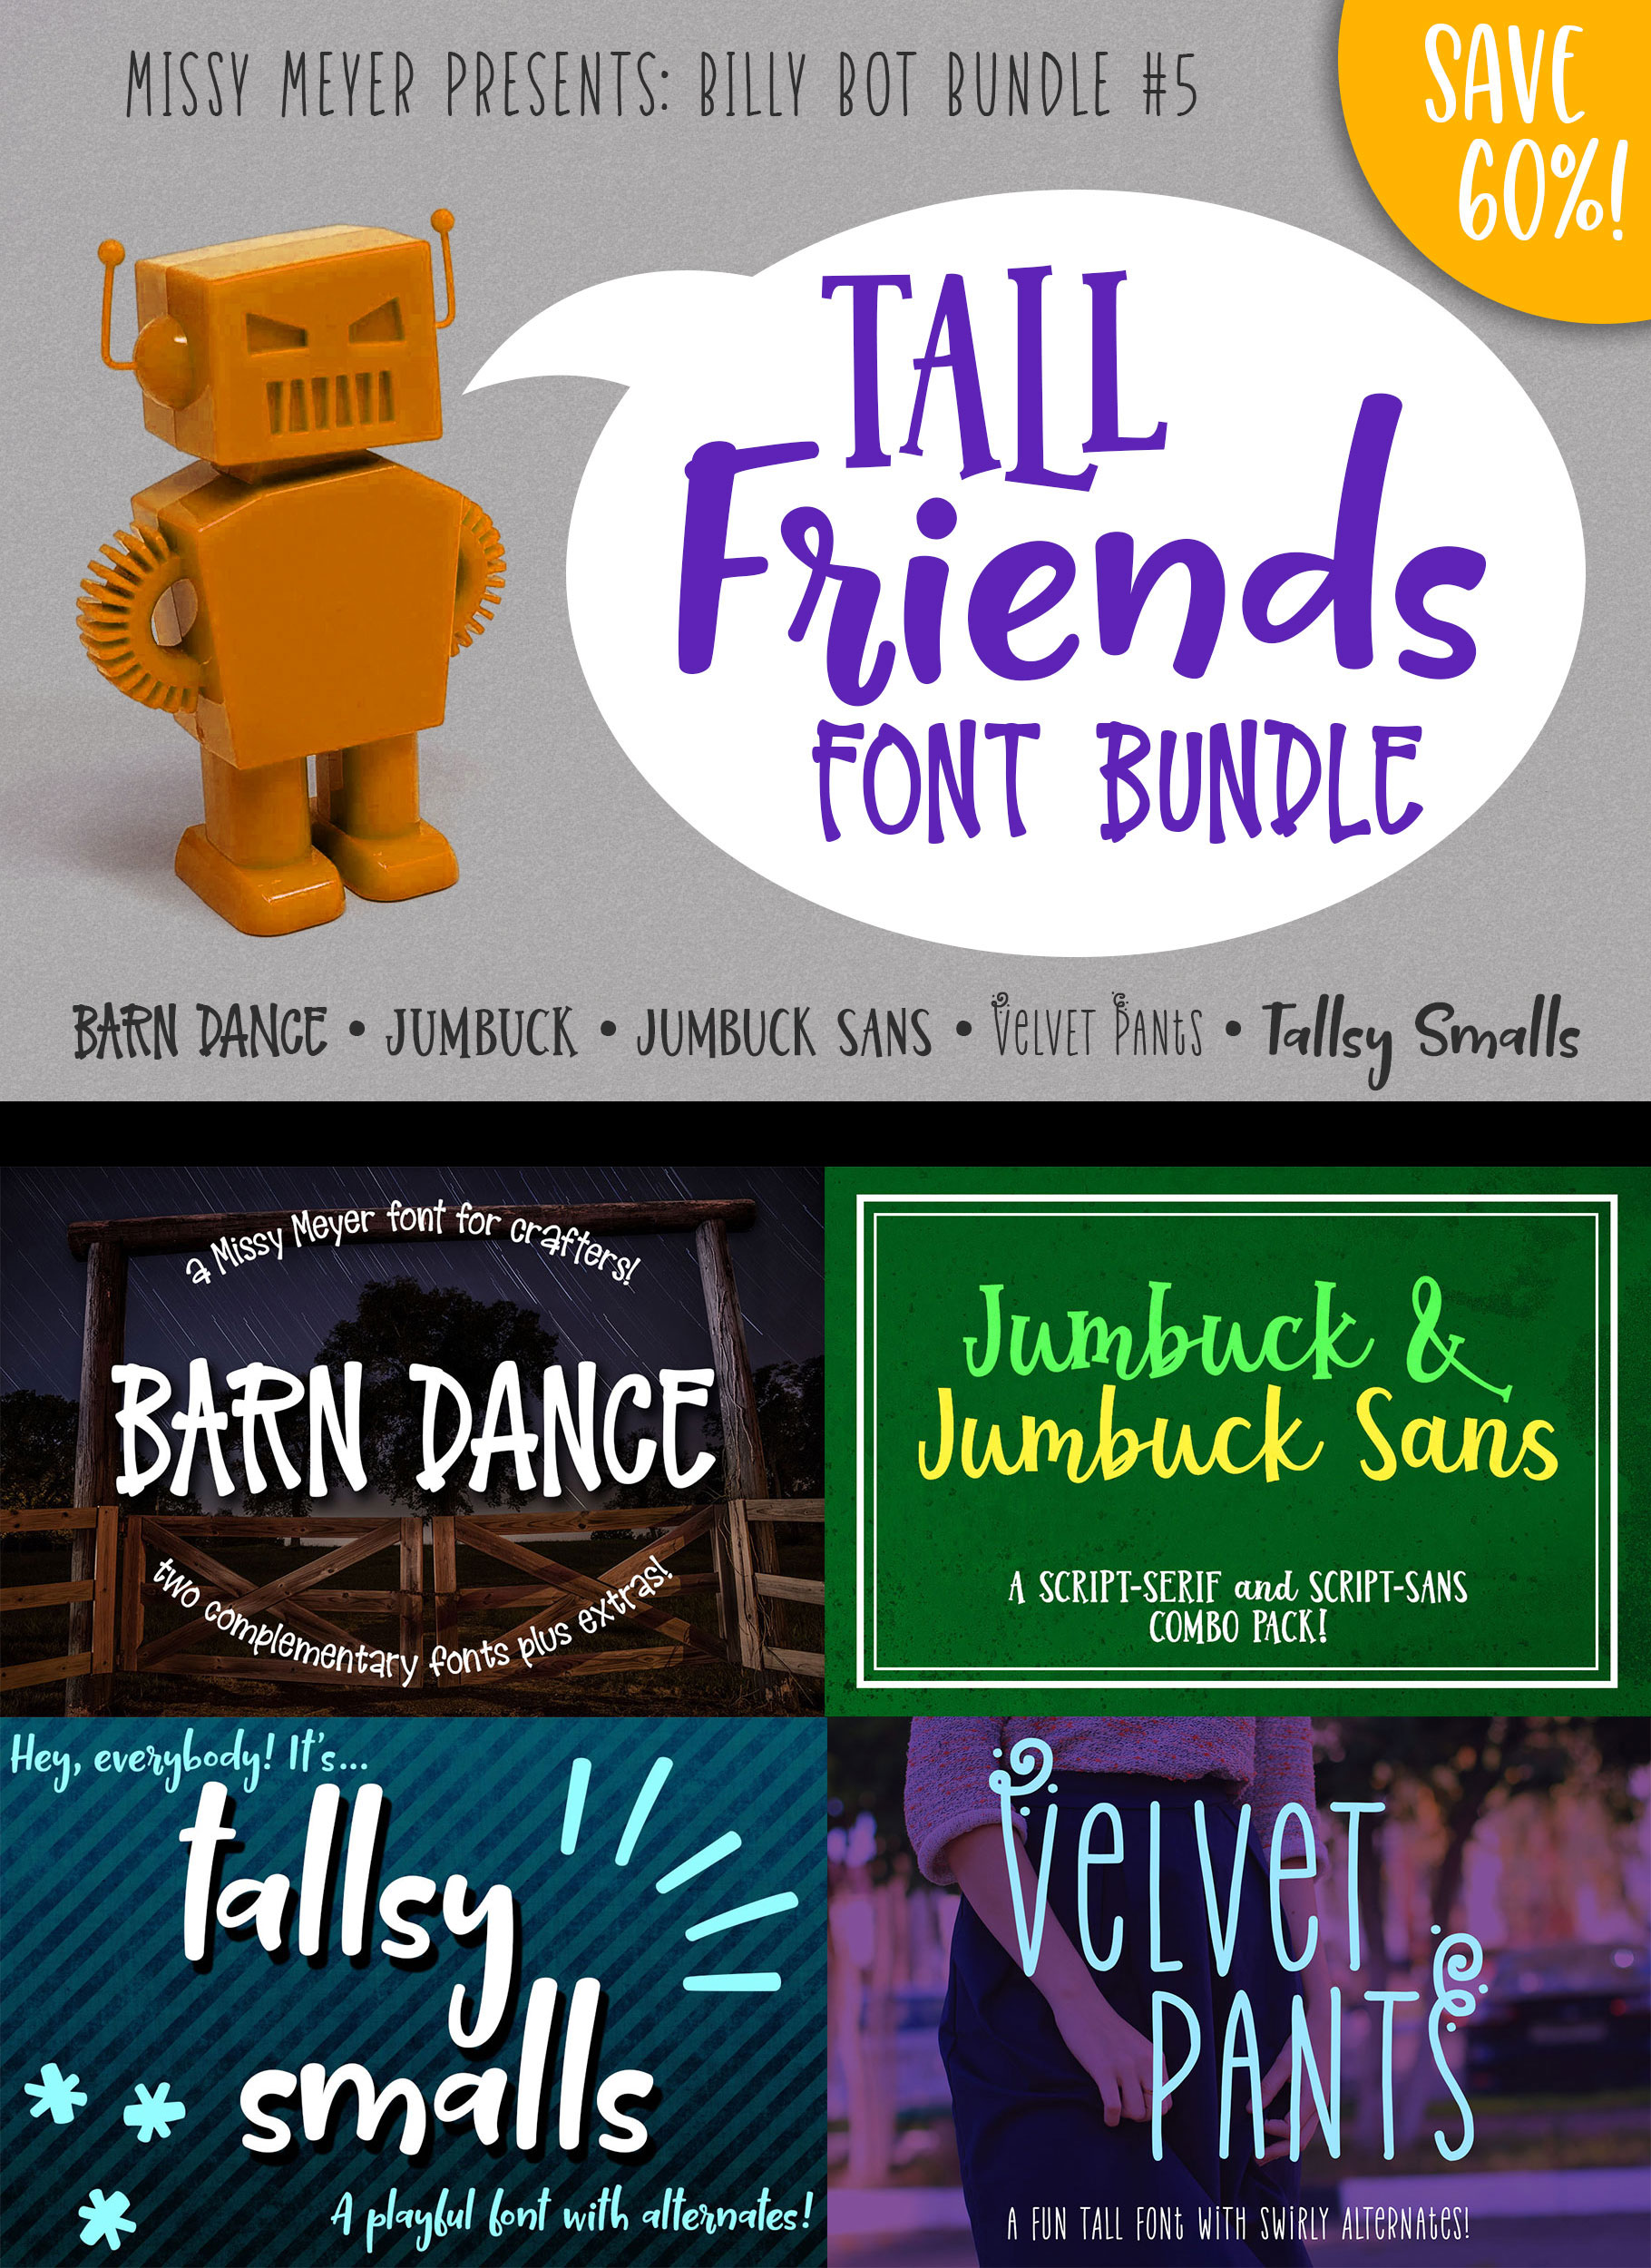 Billy Bot Bundle 5 - Tall Friends Font Bundle! example image 7